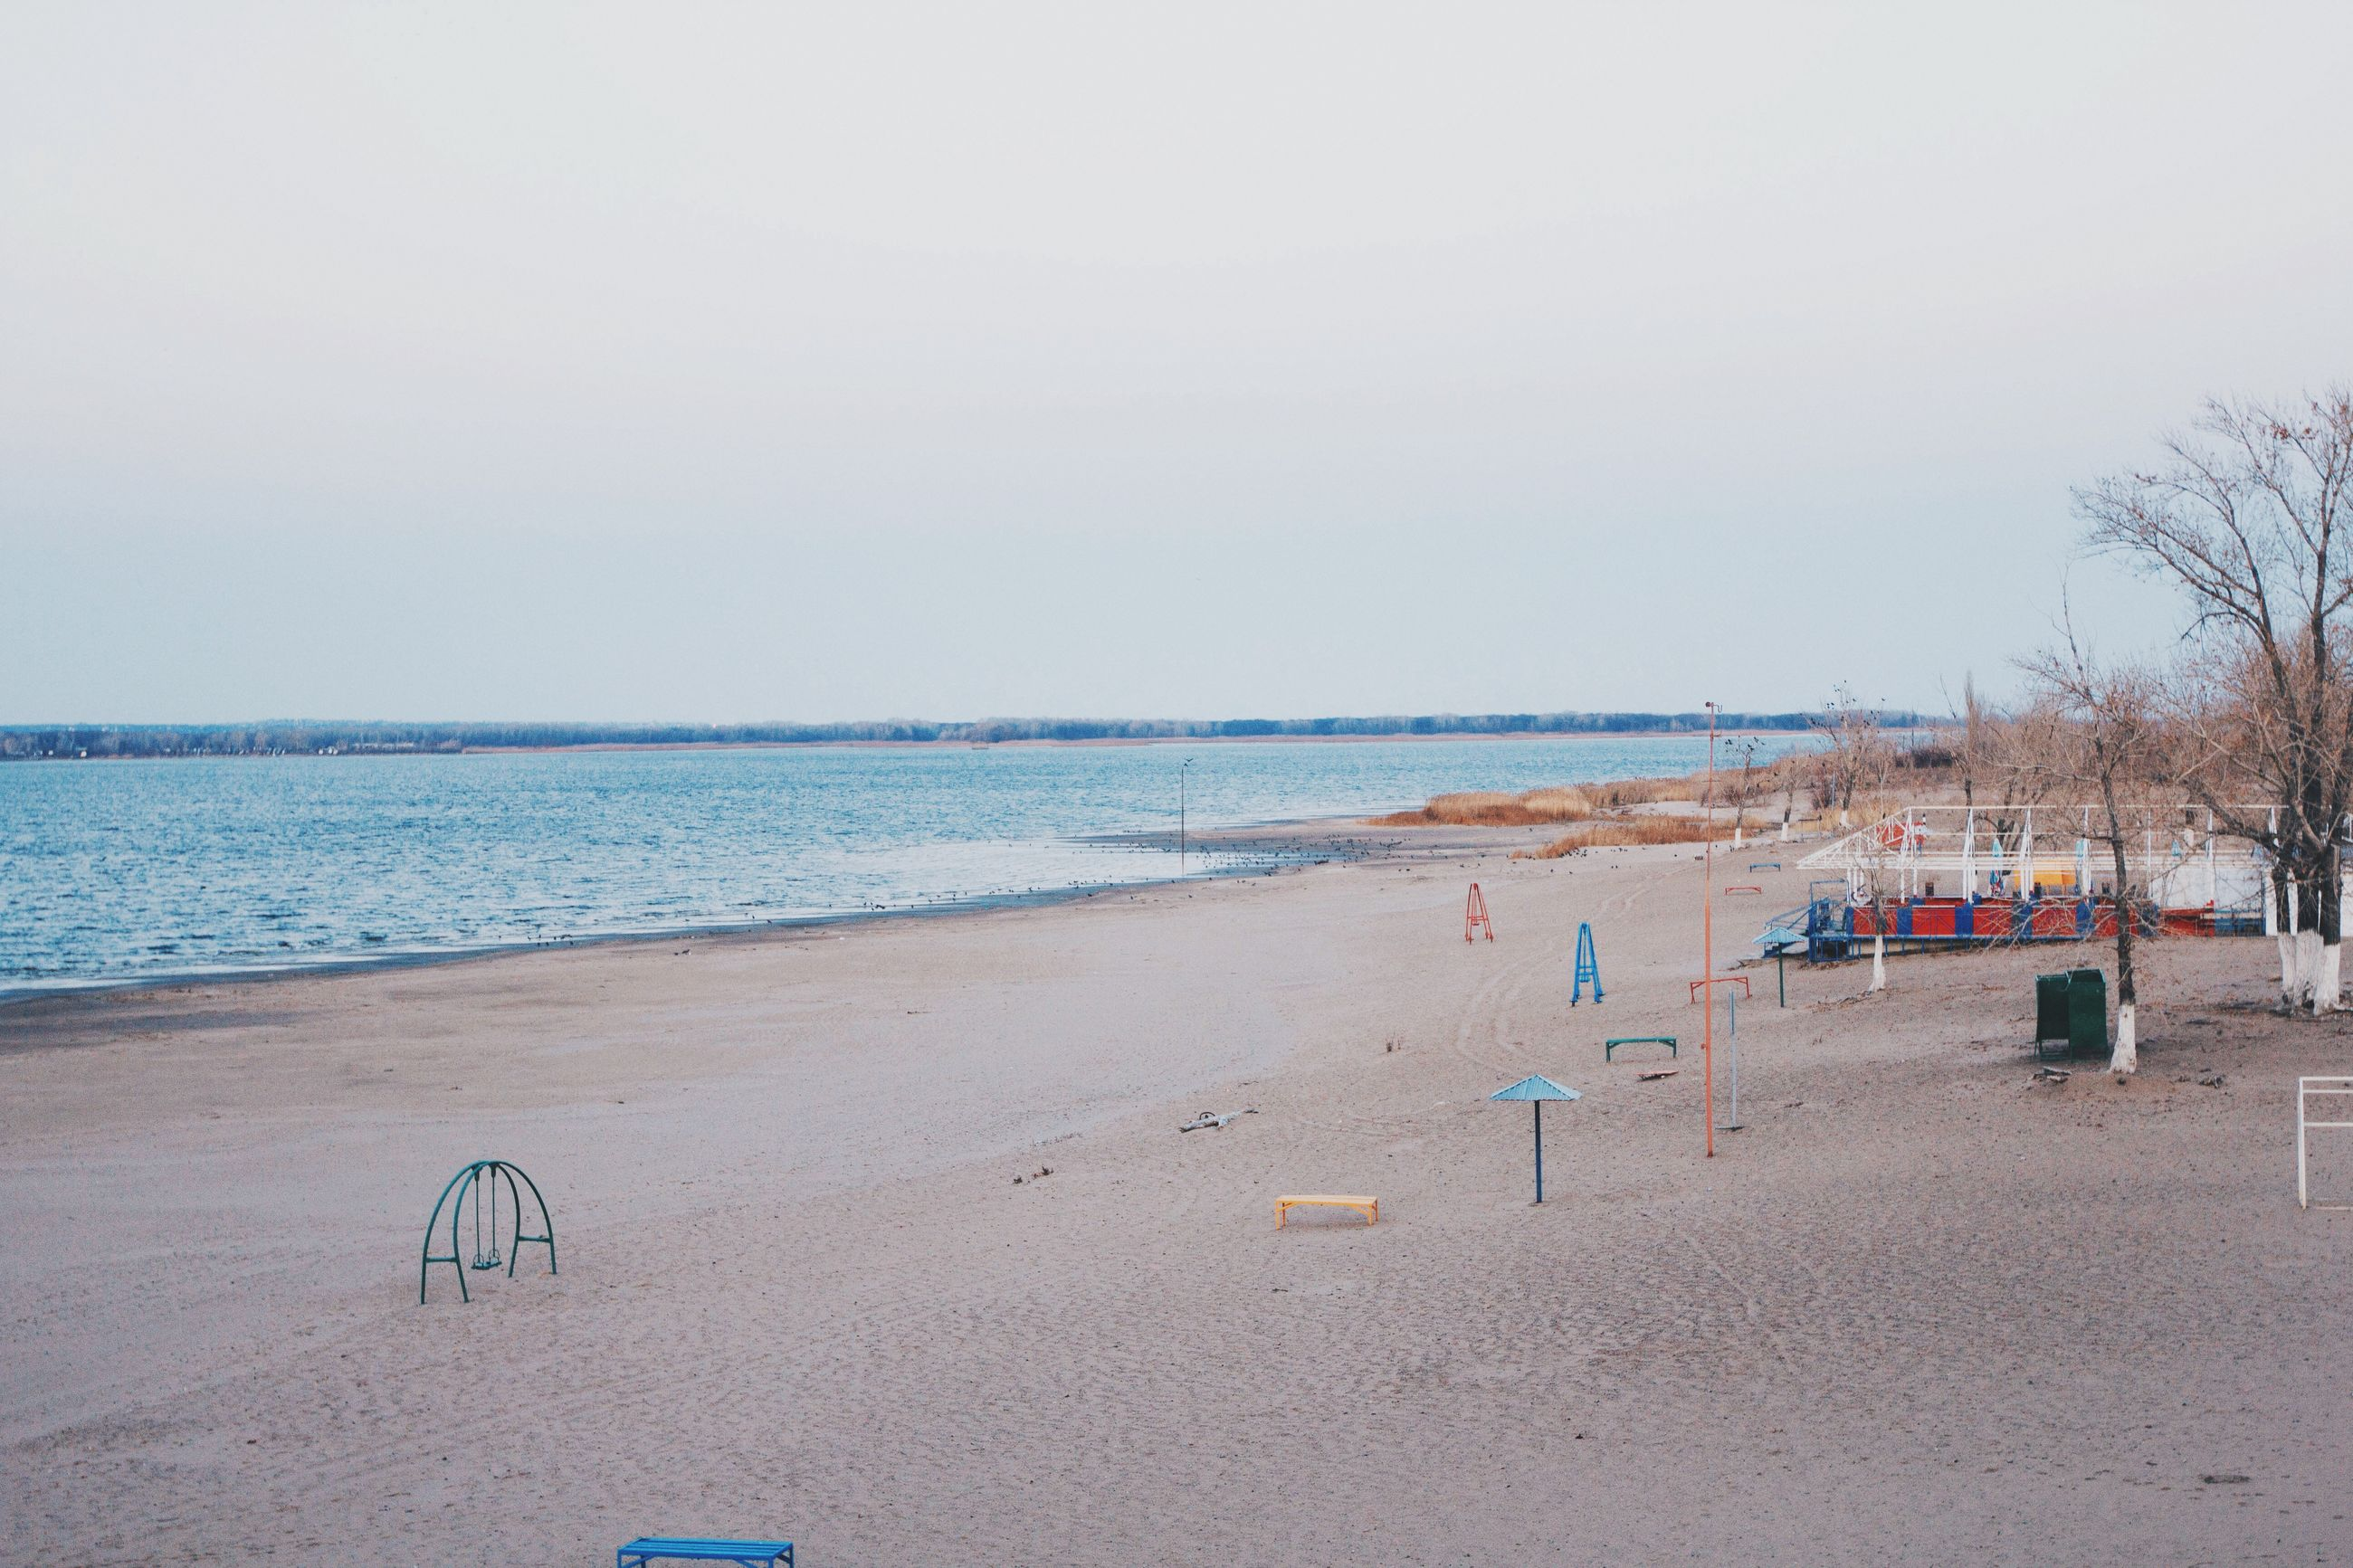 beach, sea, sand, shore, water, horizon over water, clear sky, tranquil scene, tranquility, copy space, scenics, nature, beauty in nature, vacations, sky, incidental people, idyllic, day, coastline, relaxation